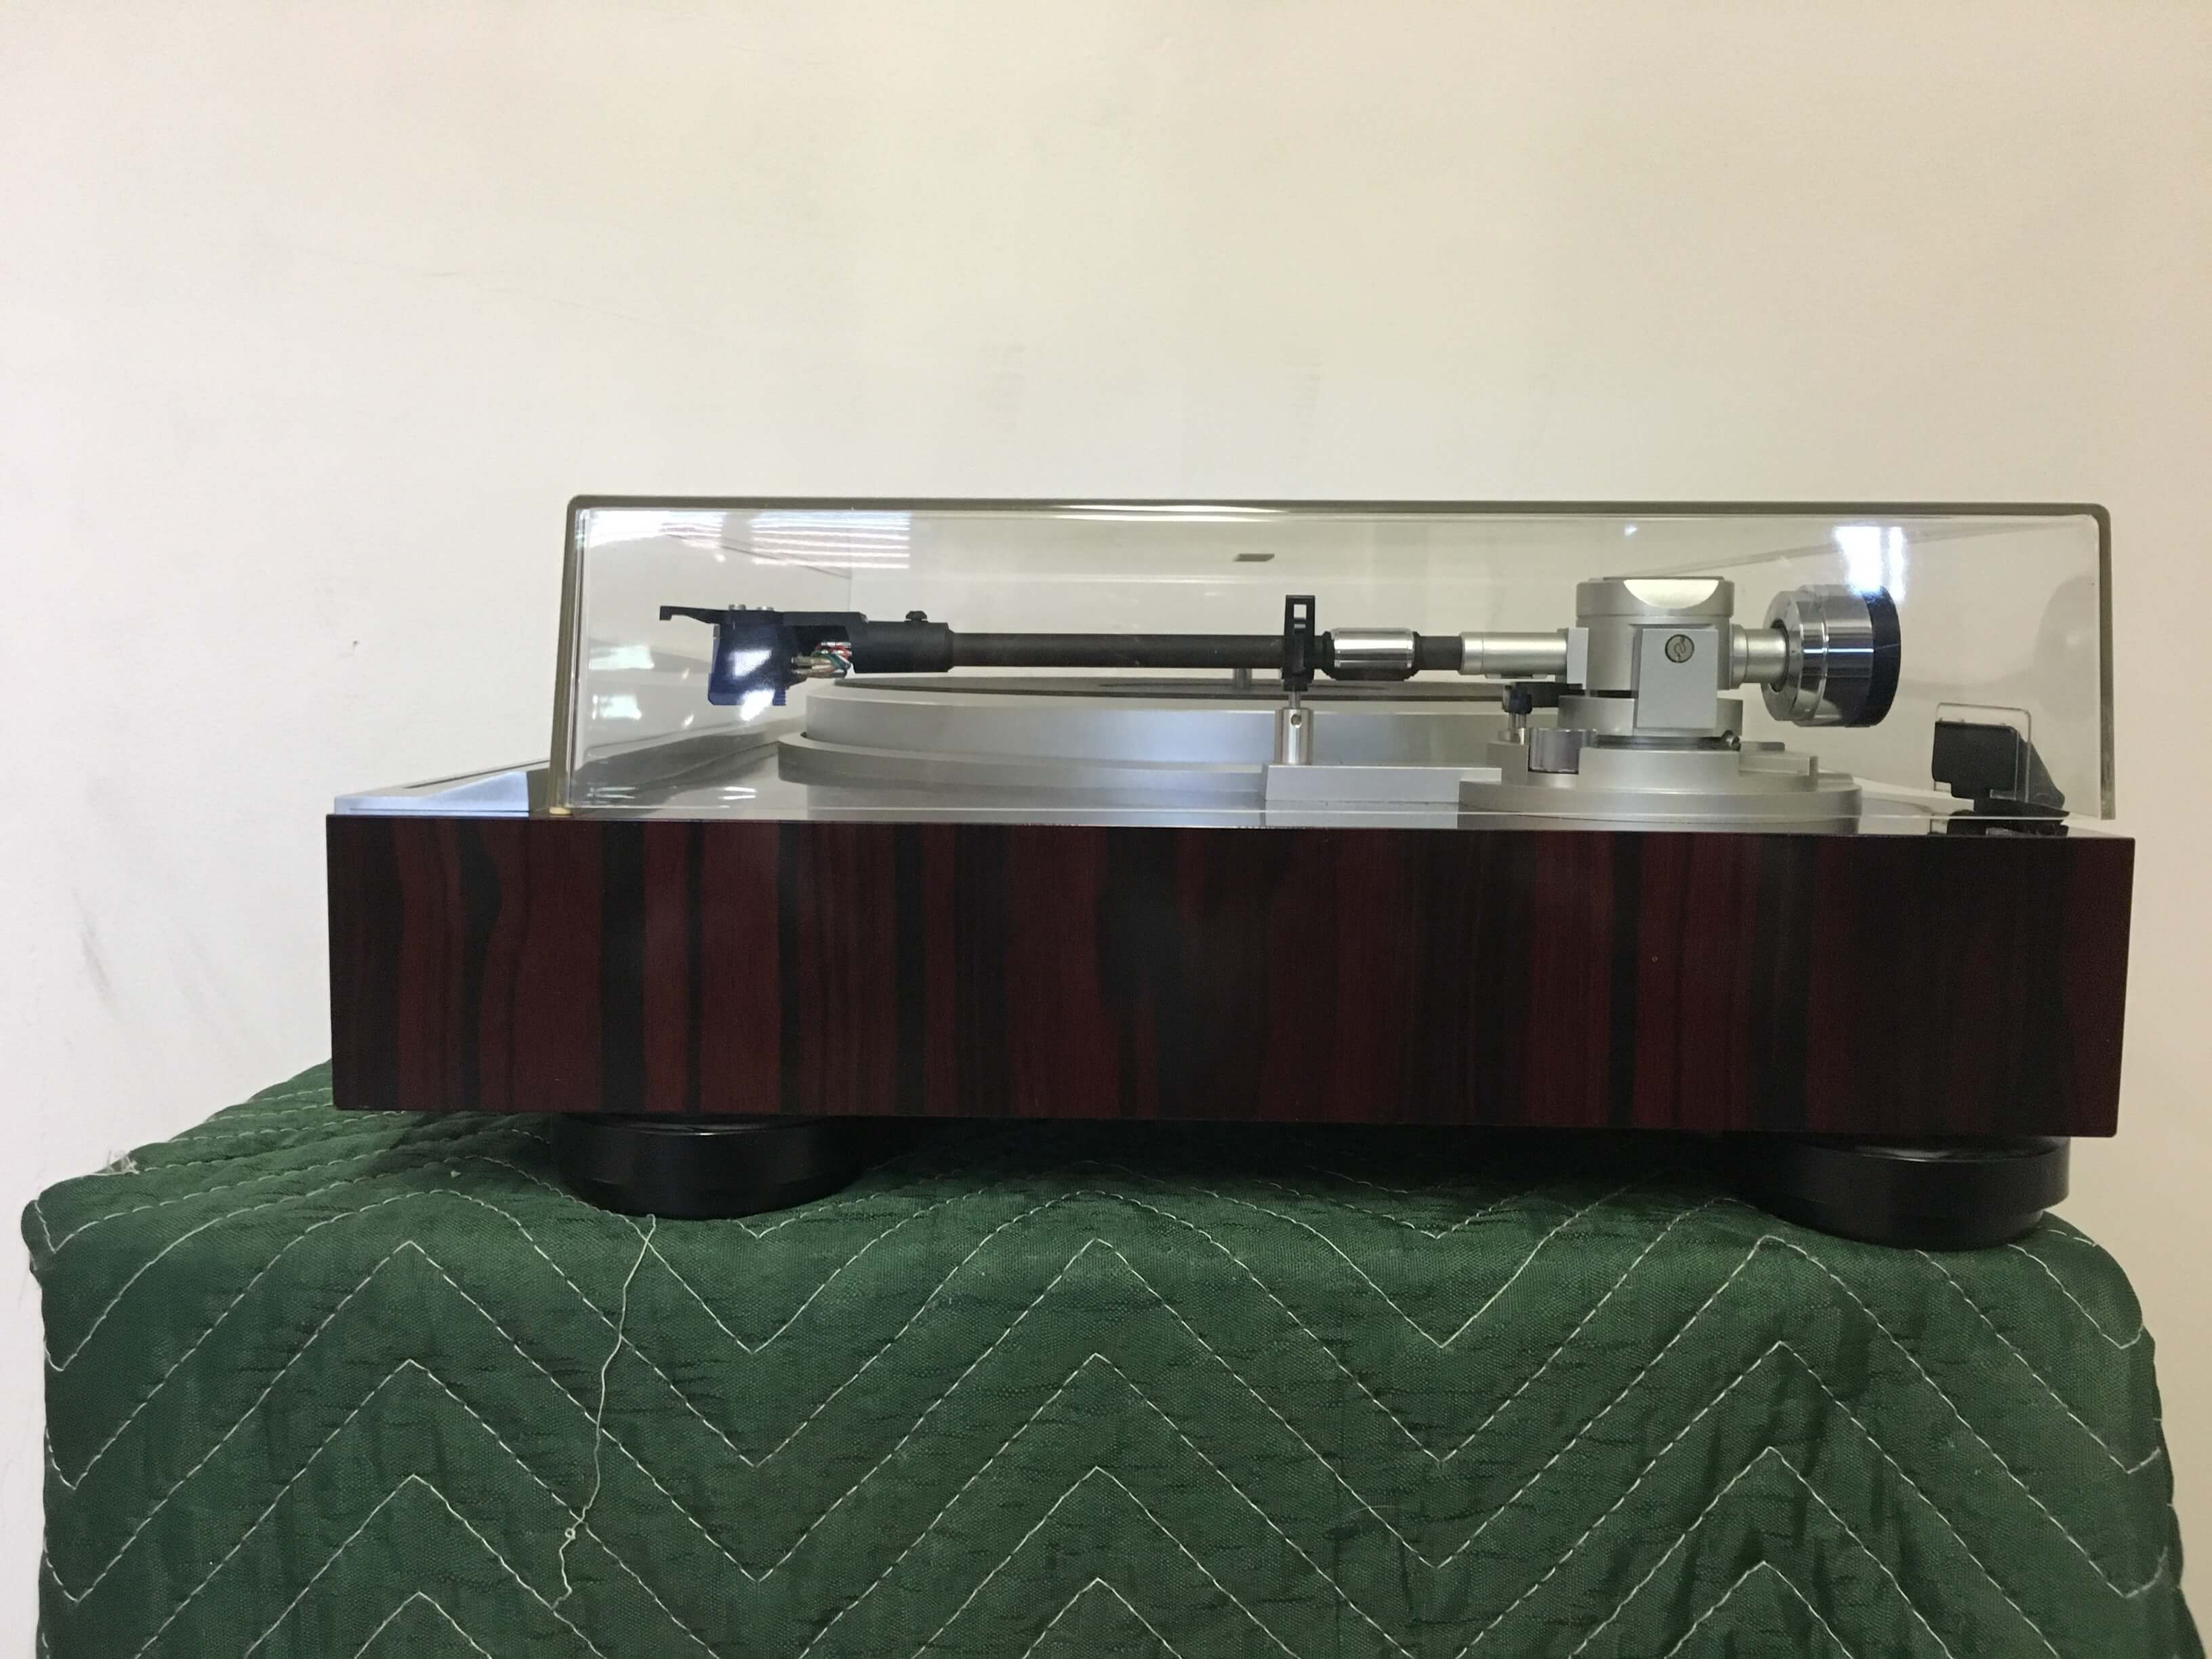 Pioneer PL-707 direct drive full automatic turntable